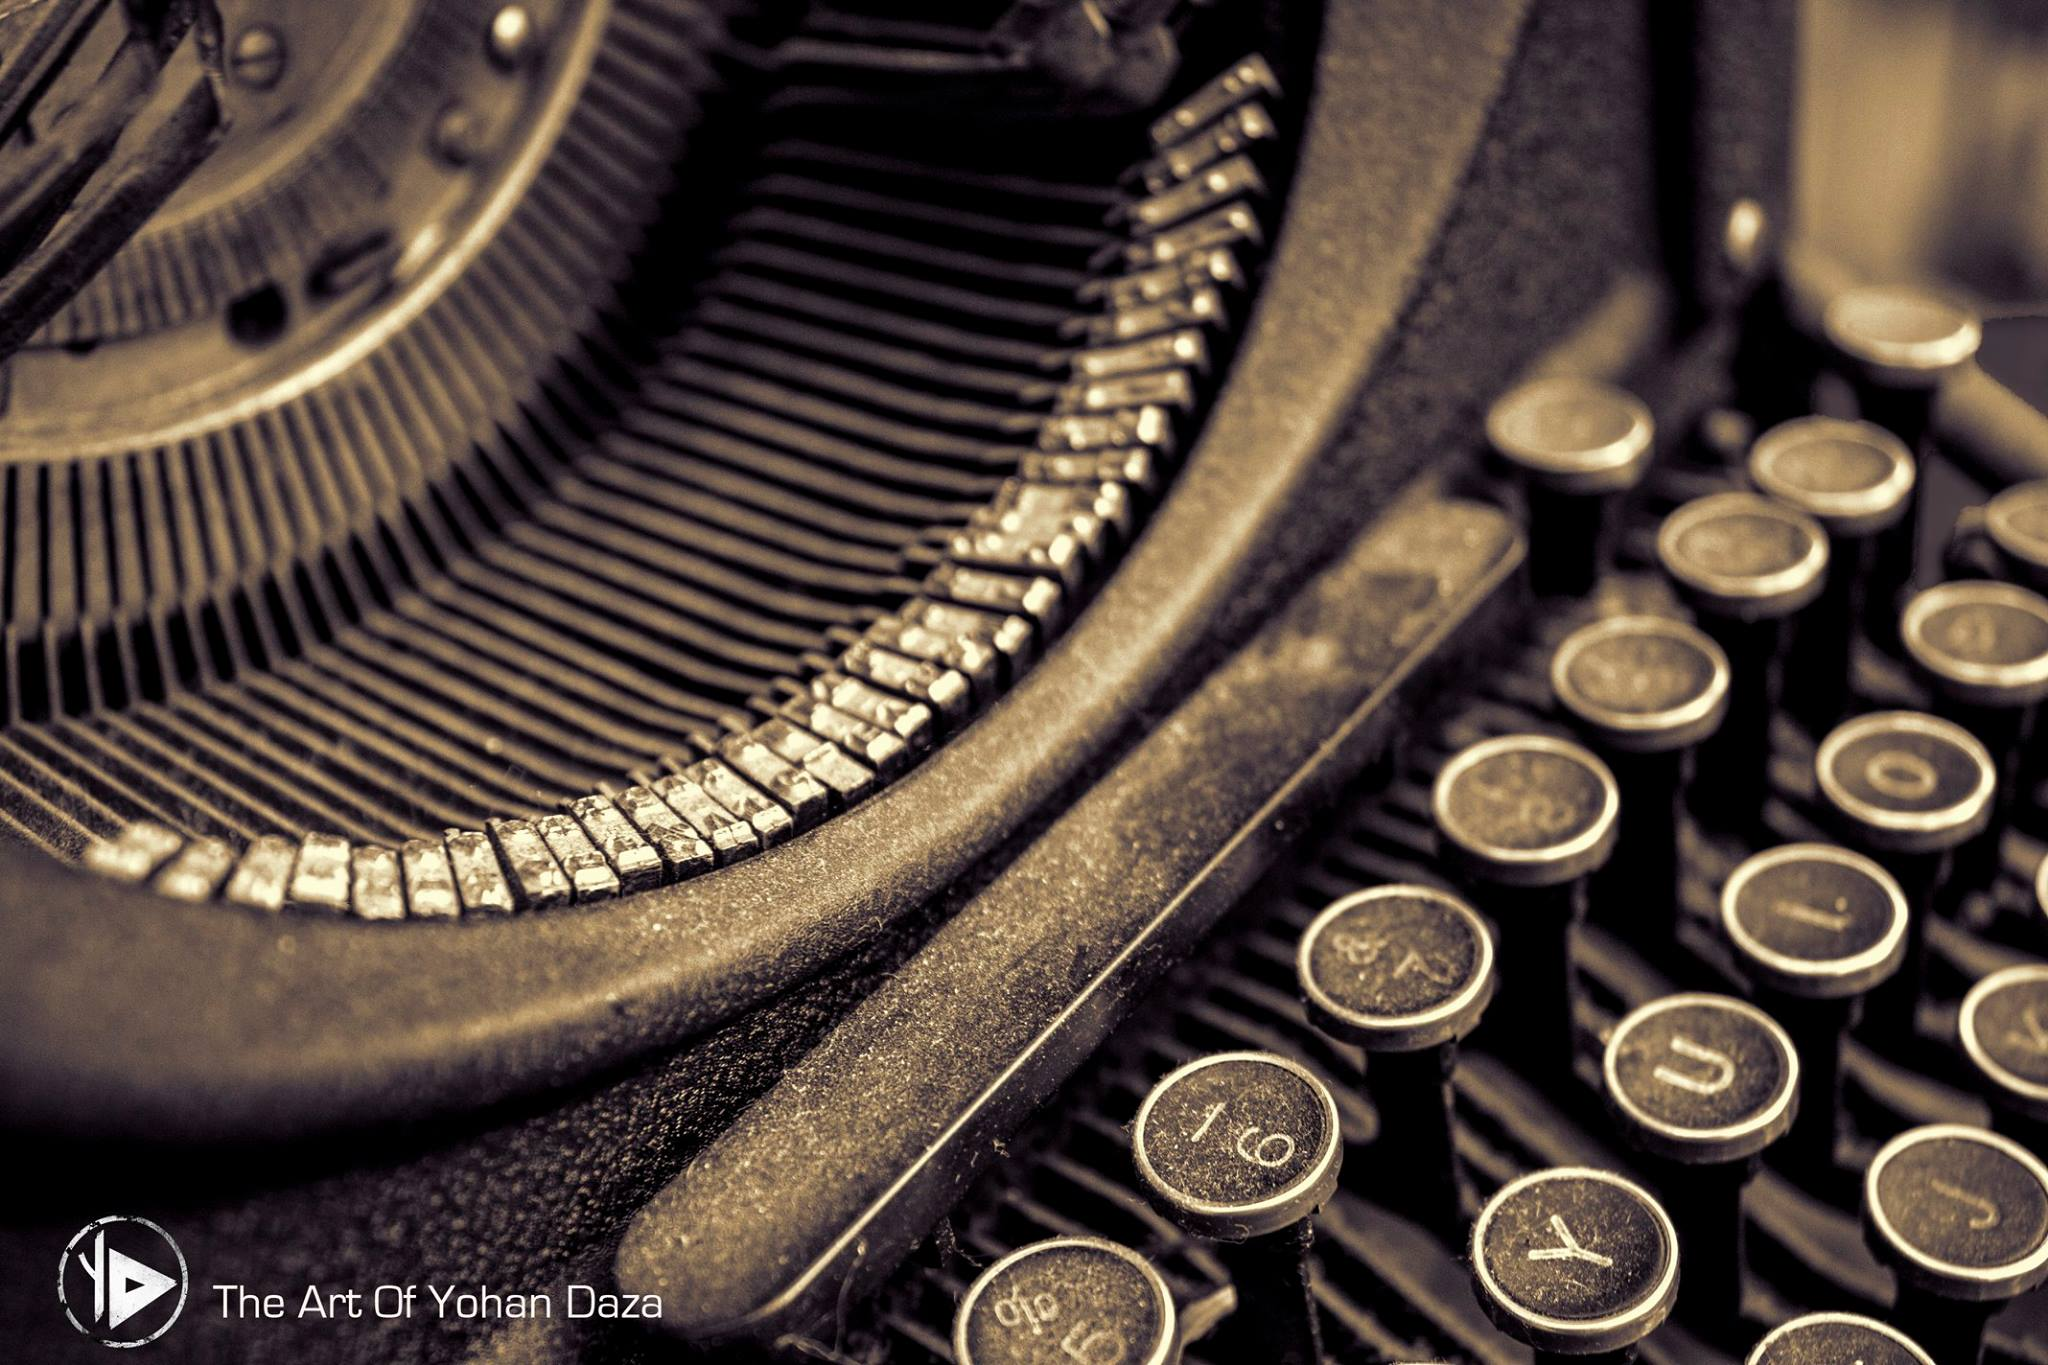 Typewriter closeup by Yohan Daza